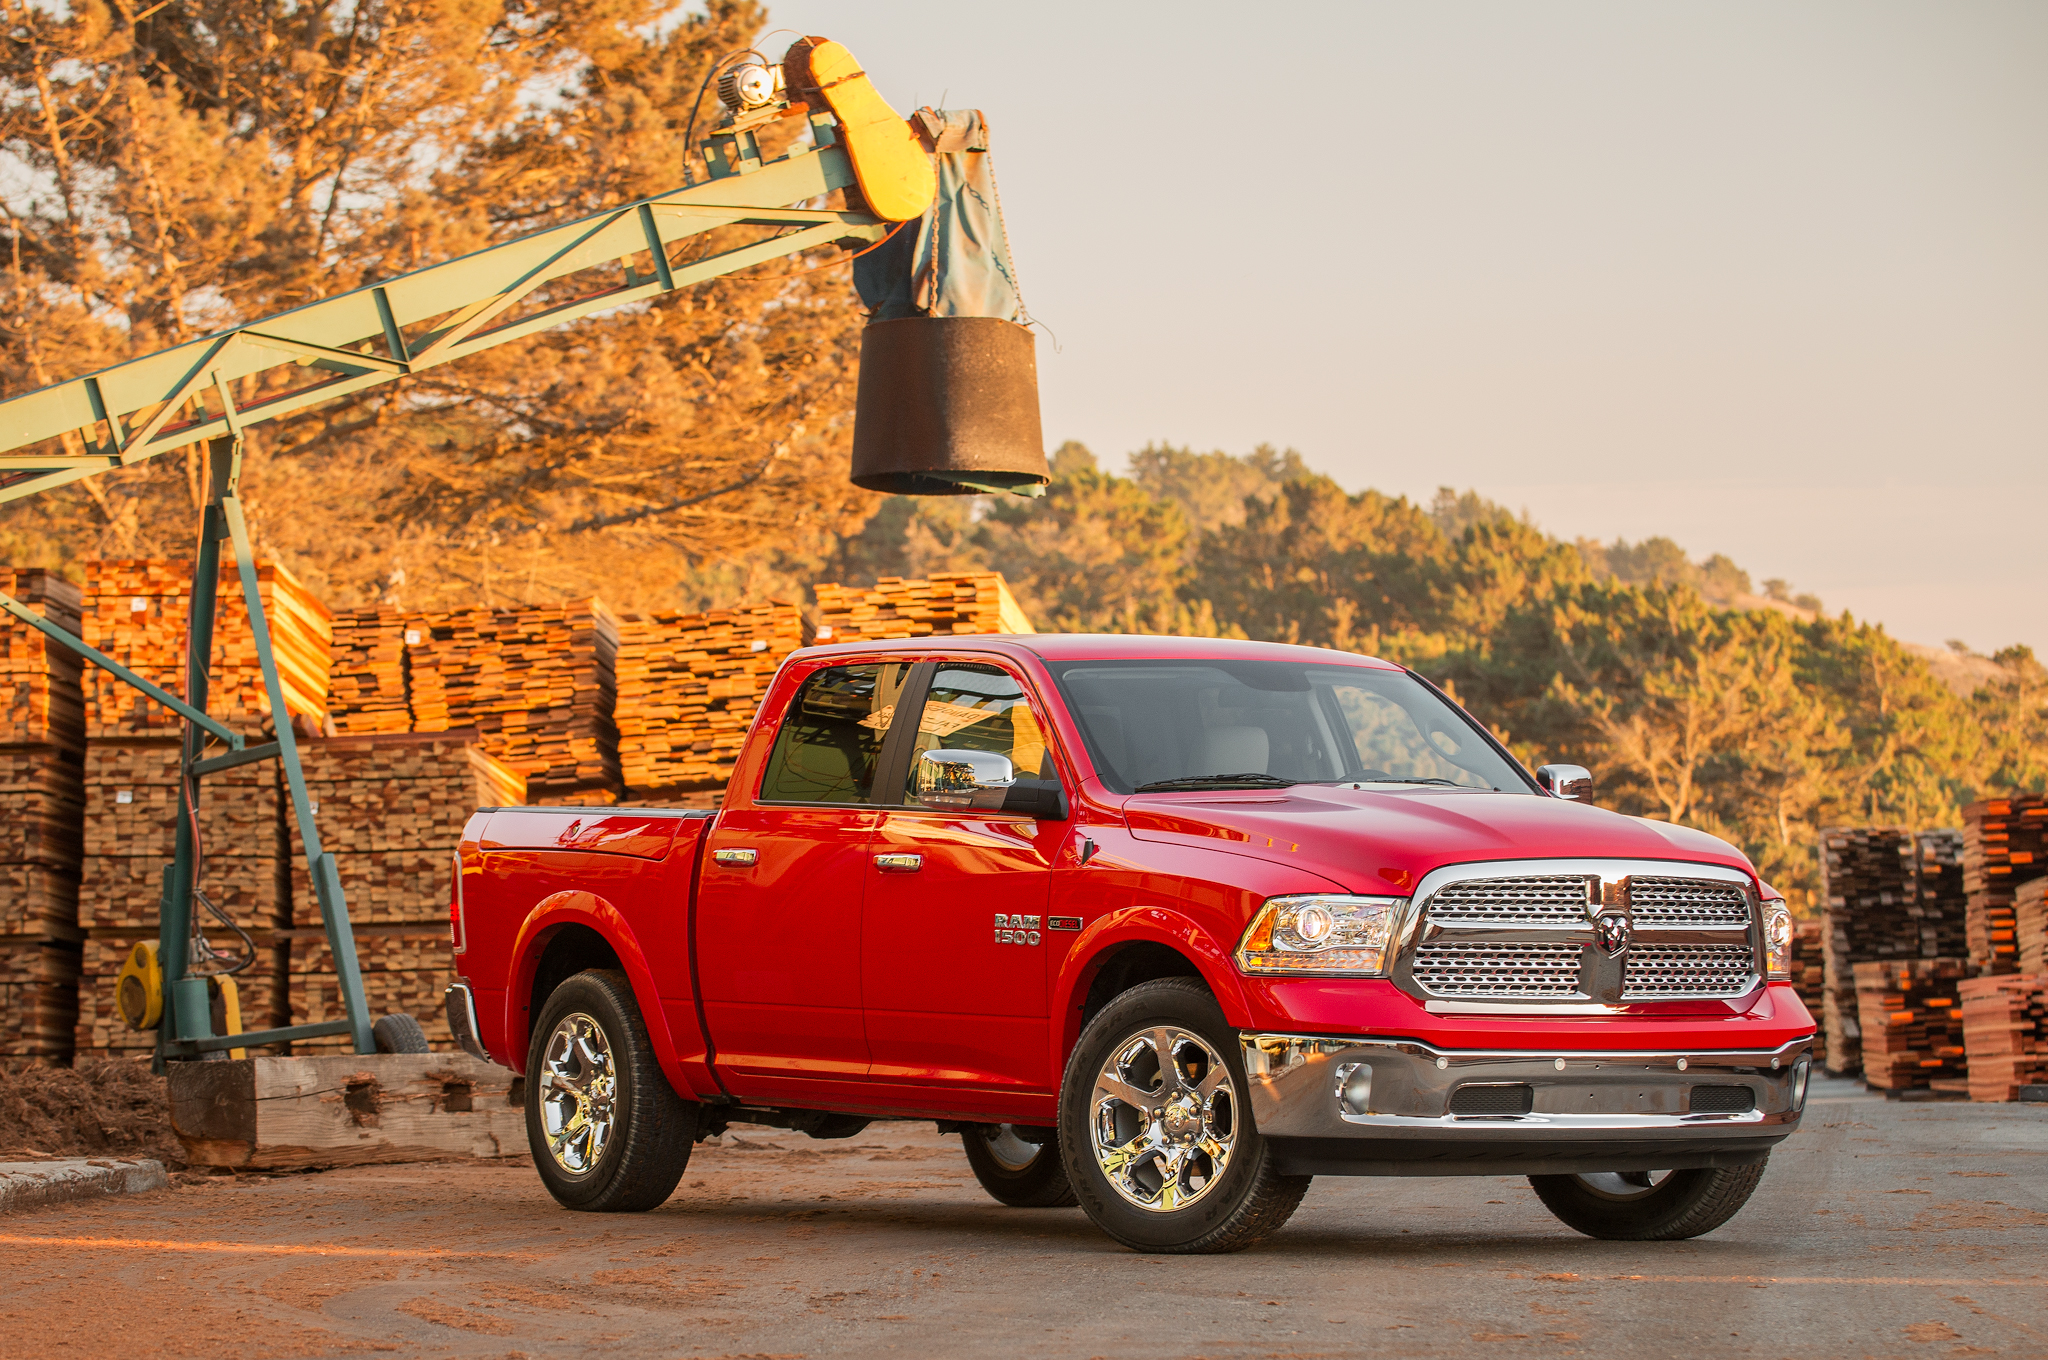 2014 Ram 1500 Ecodiesel Epa Rated At 20 28 Mpg Motor Trend